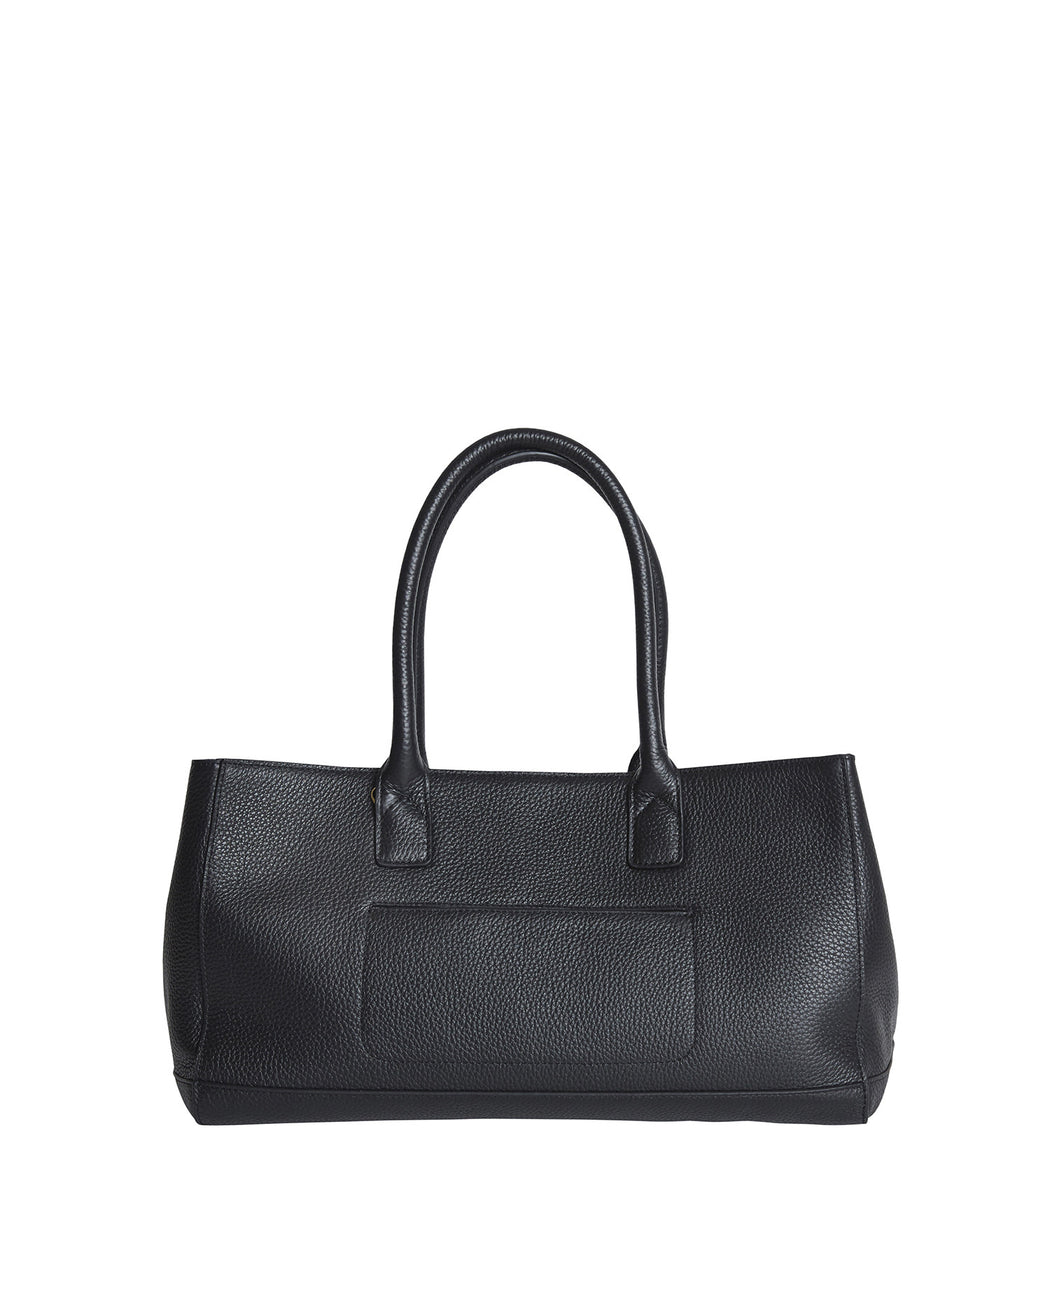 WORLD Christchurch Handbag Black